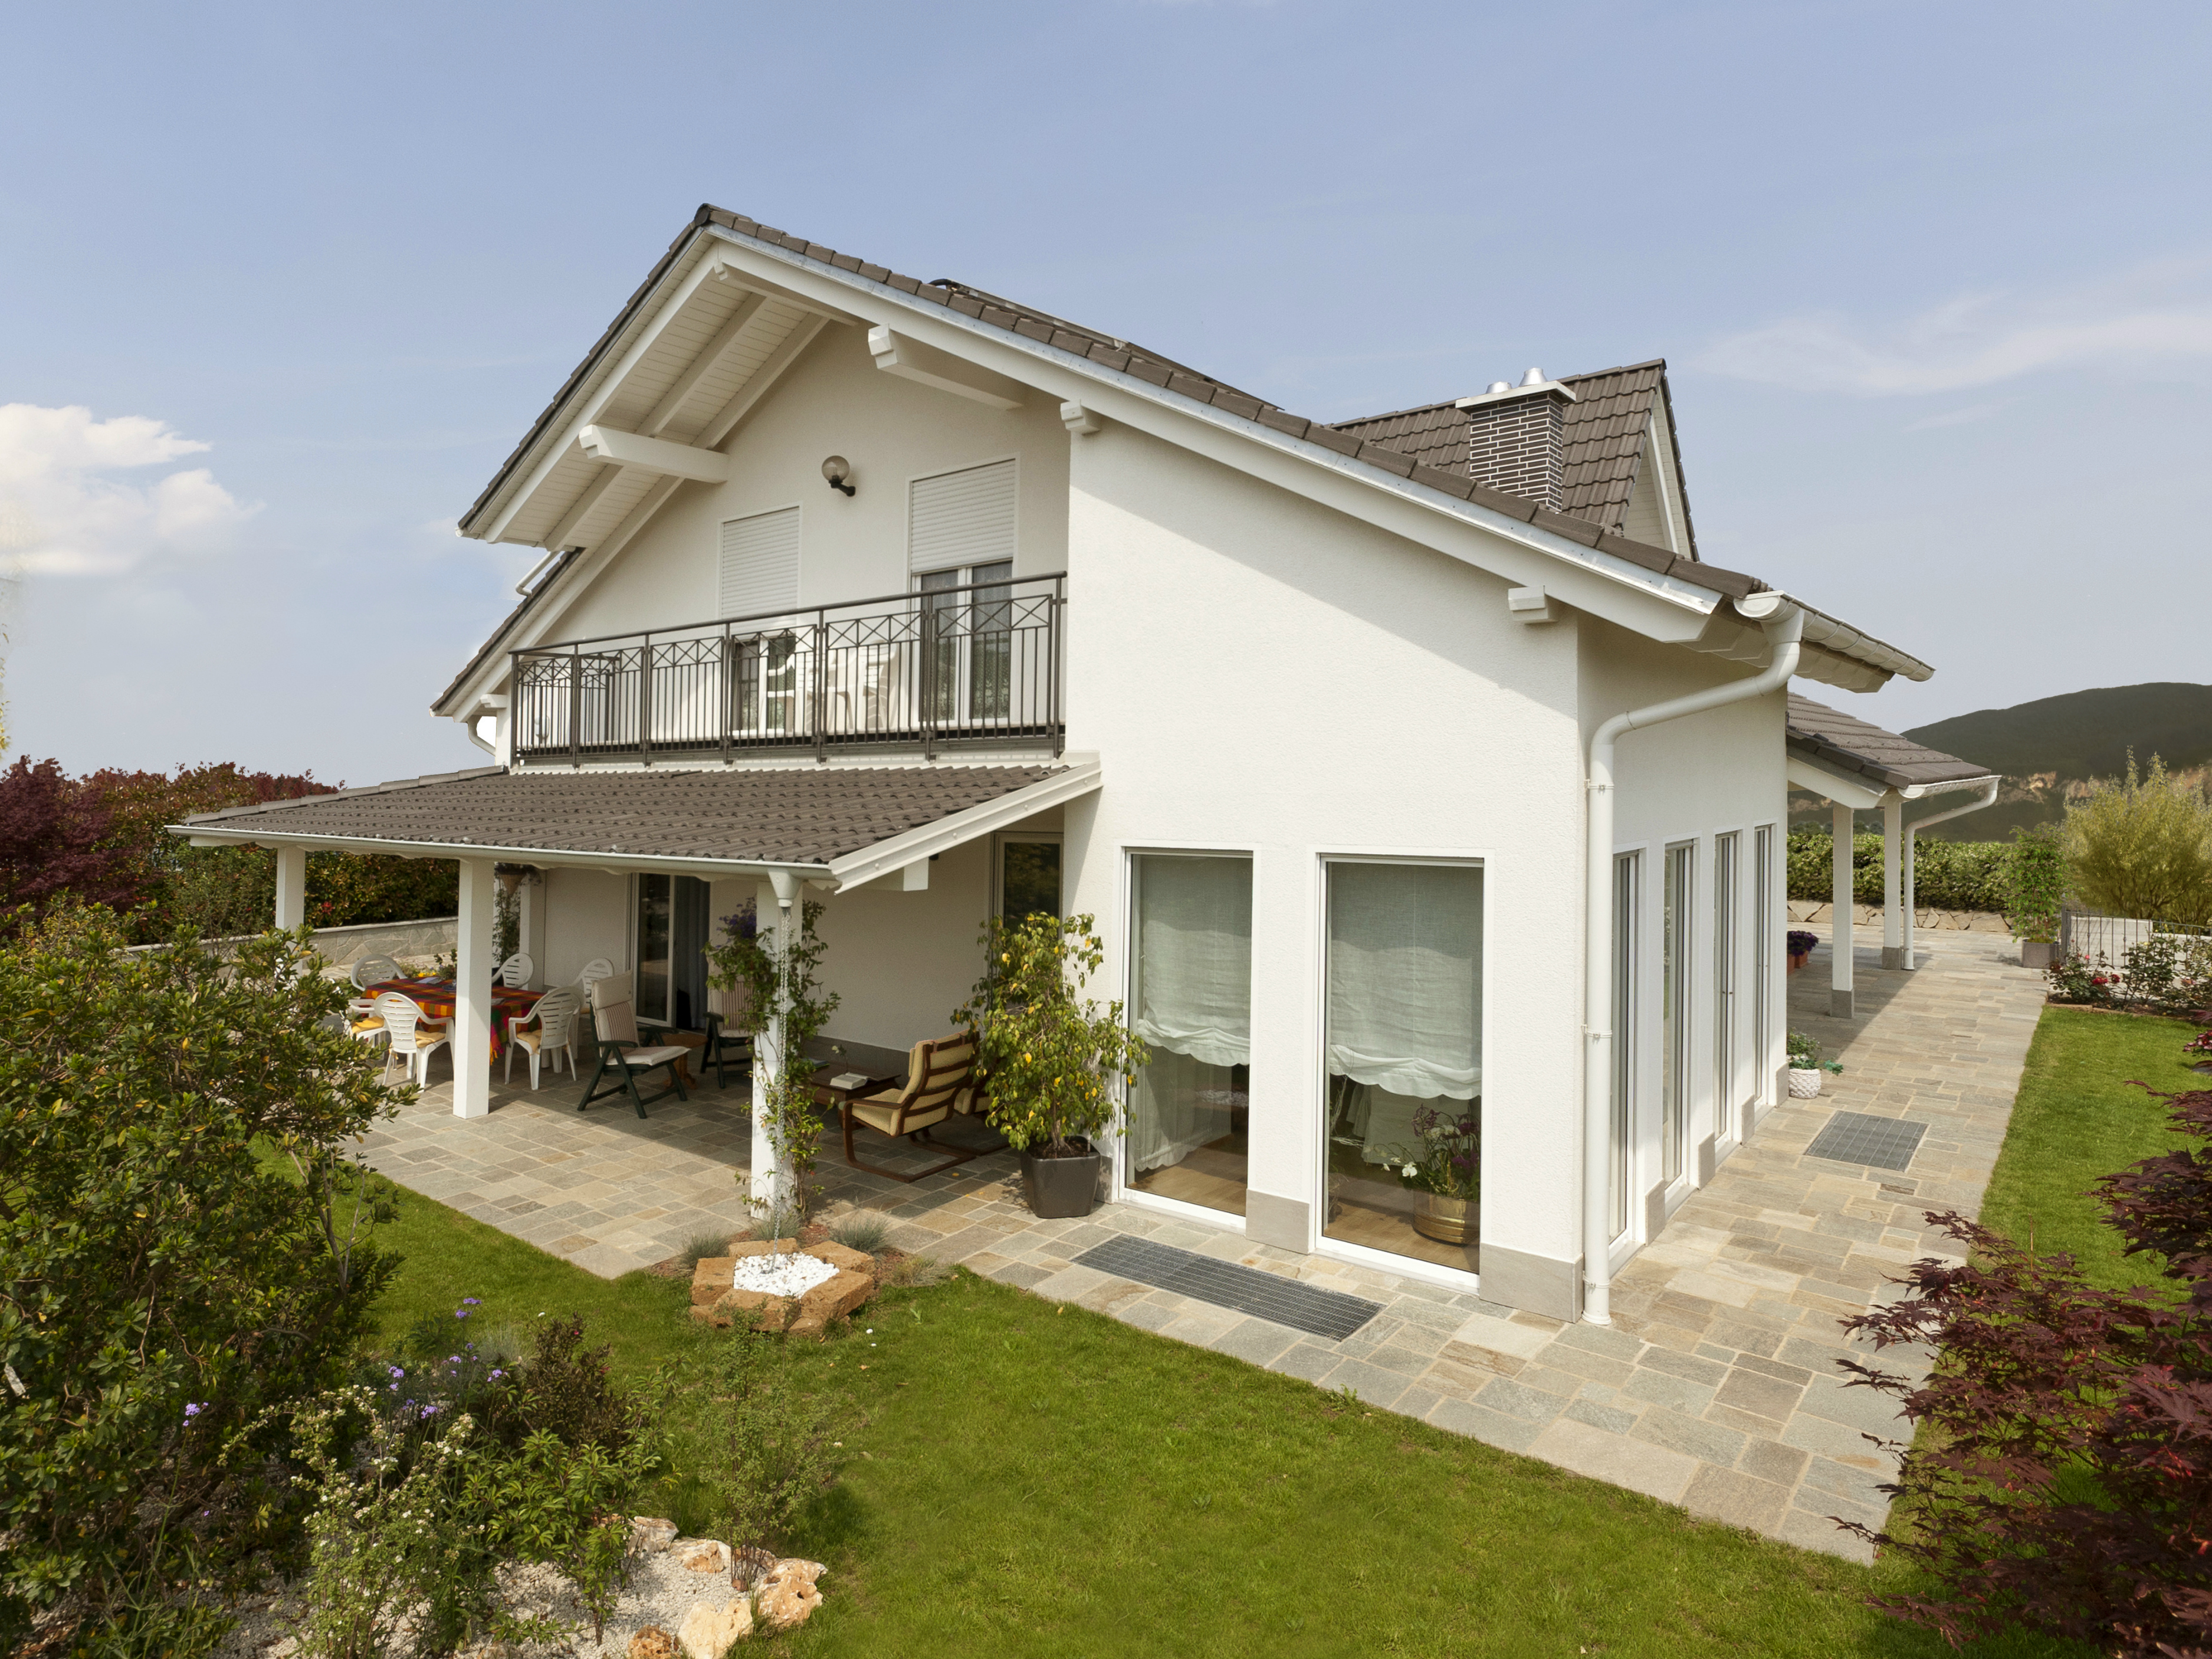 Wooden house L SPZI by Spazio Positivo by ensch-Haus size: 3750 x 2812 post ID: 0 File size: 0 B